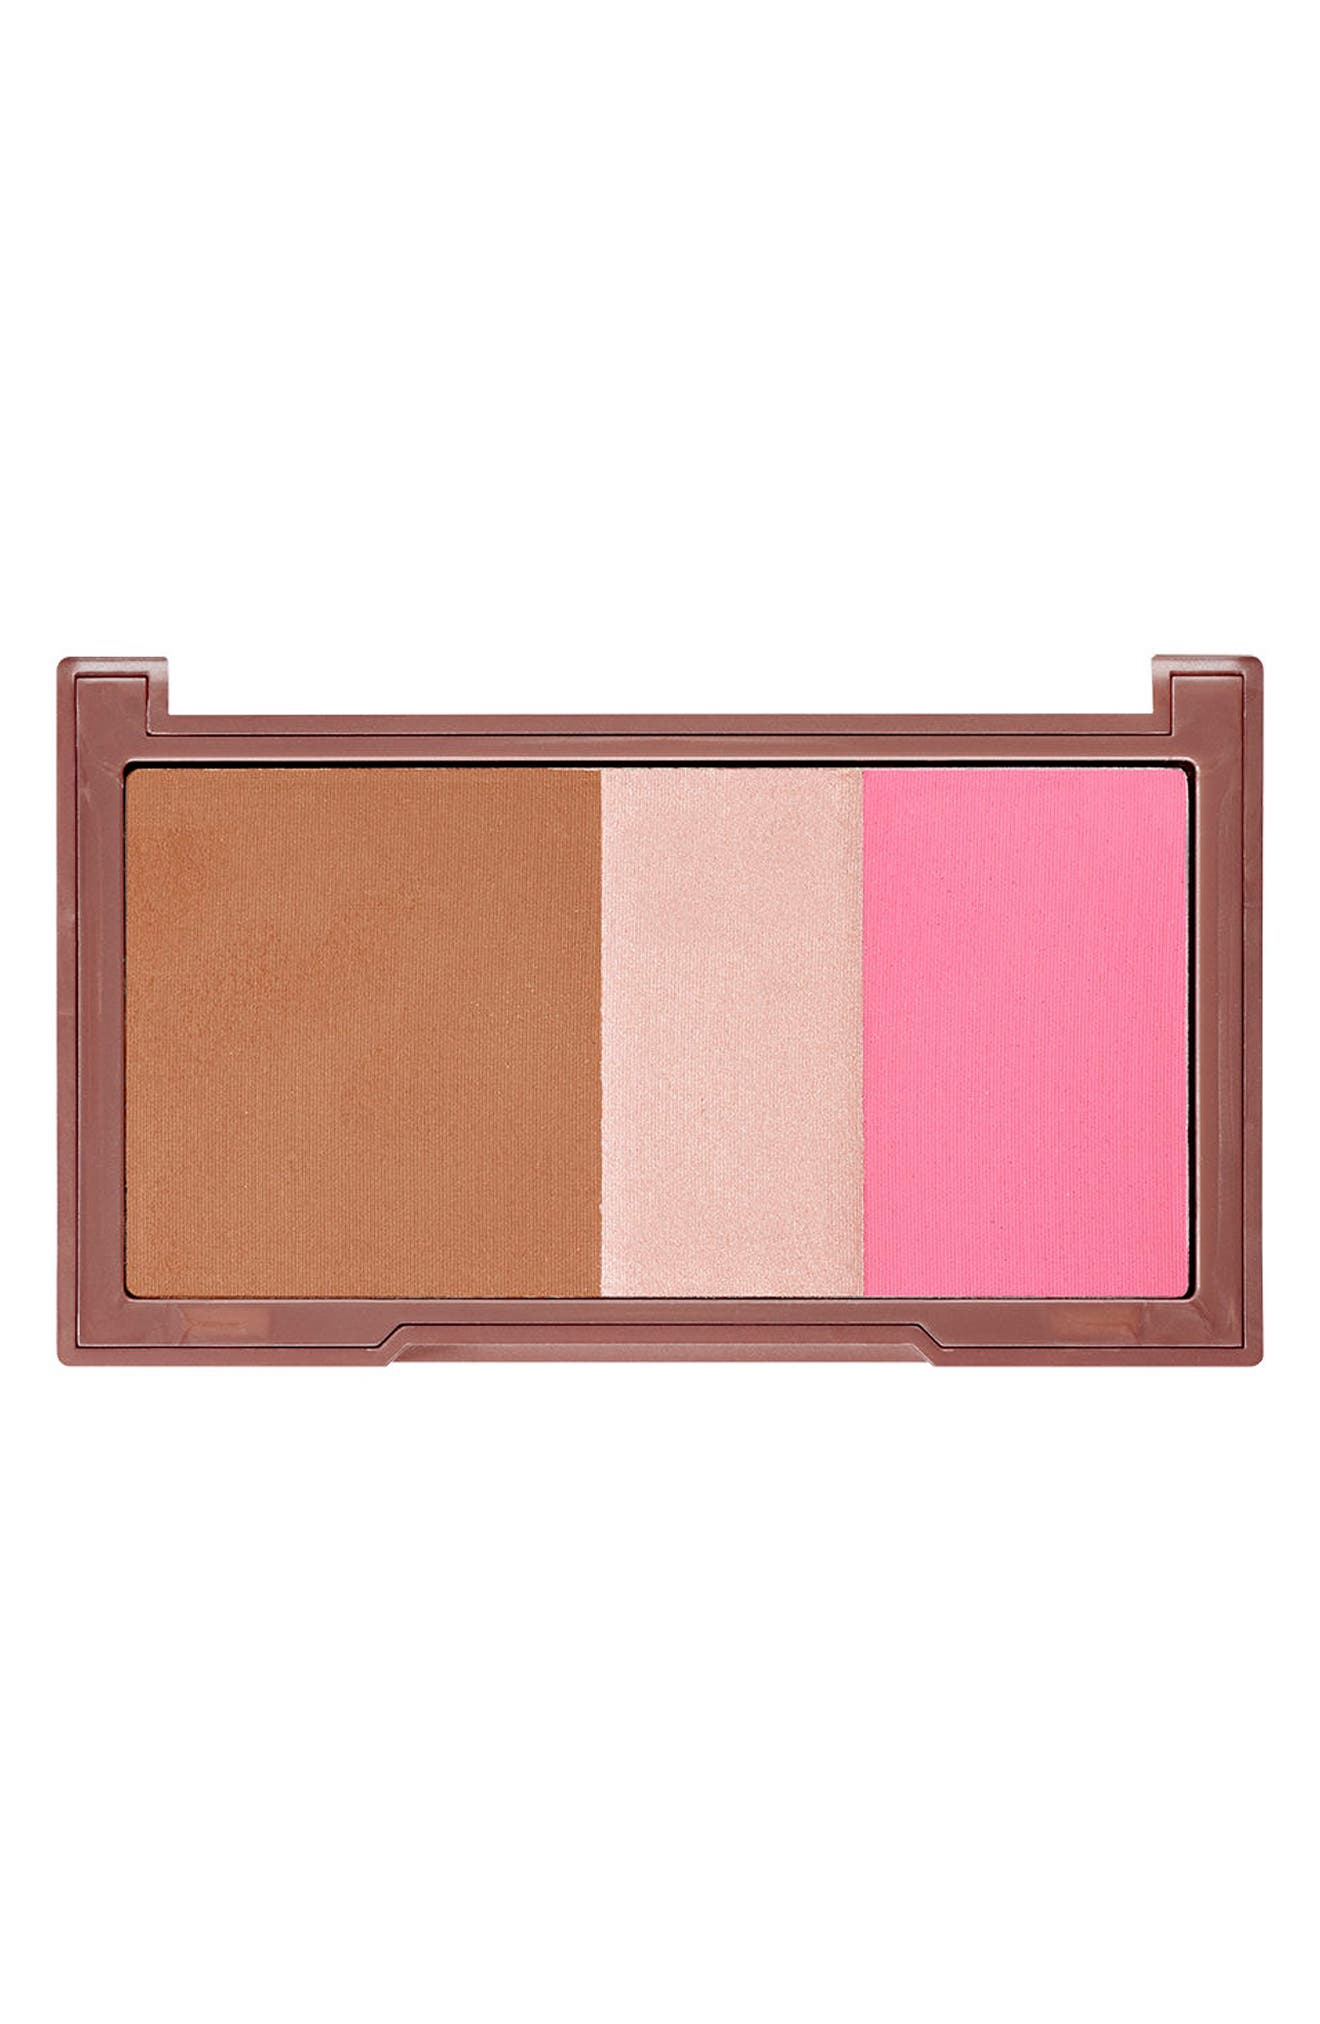 Urban Decay 'Naked Flushed' Bronzer, Highlighter & Blush Palette